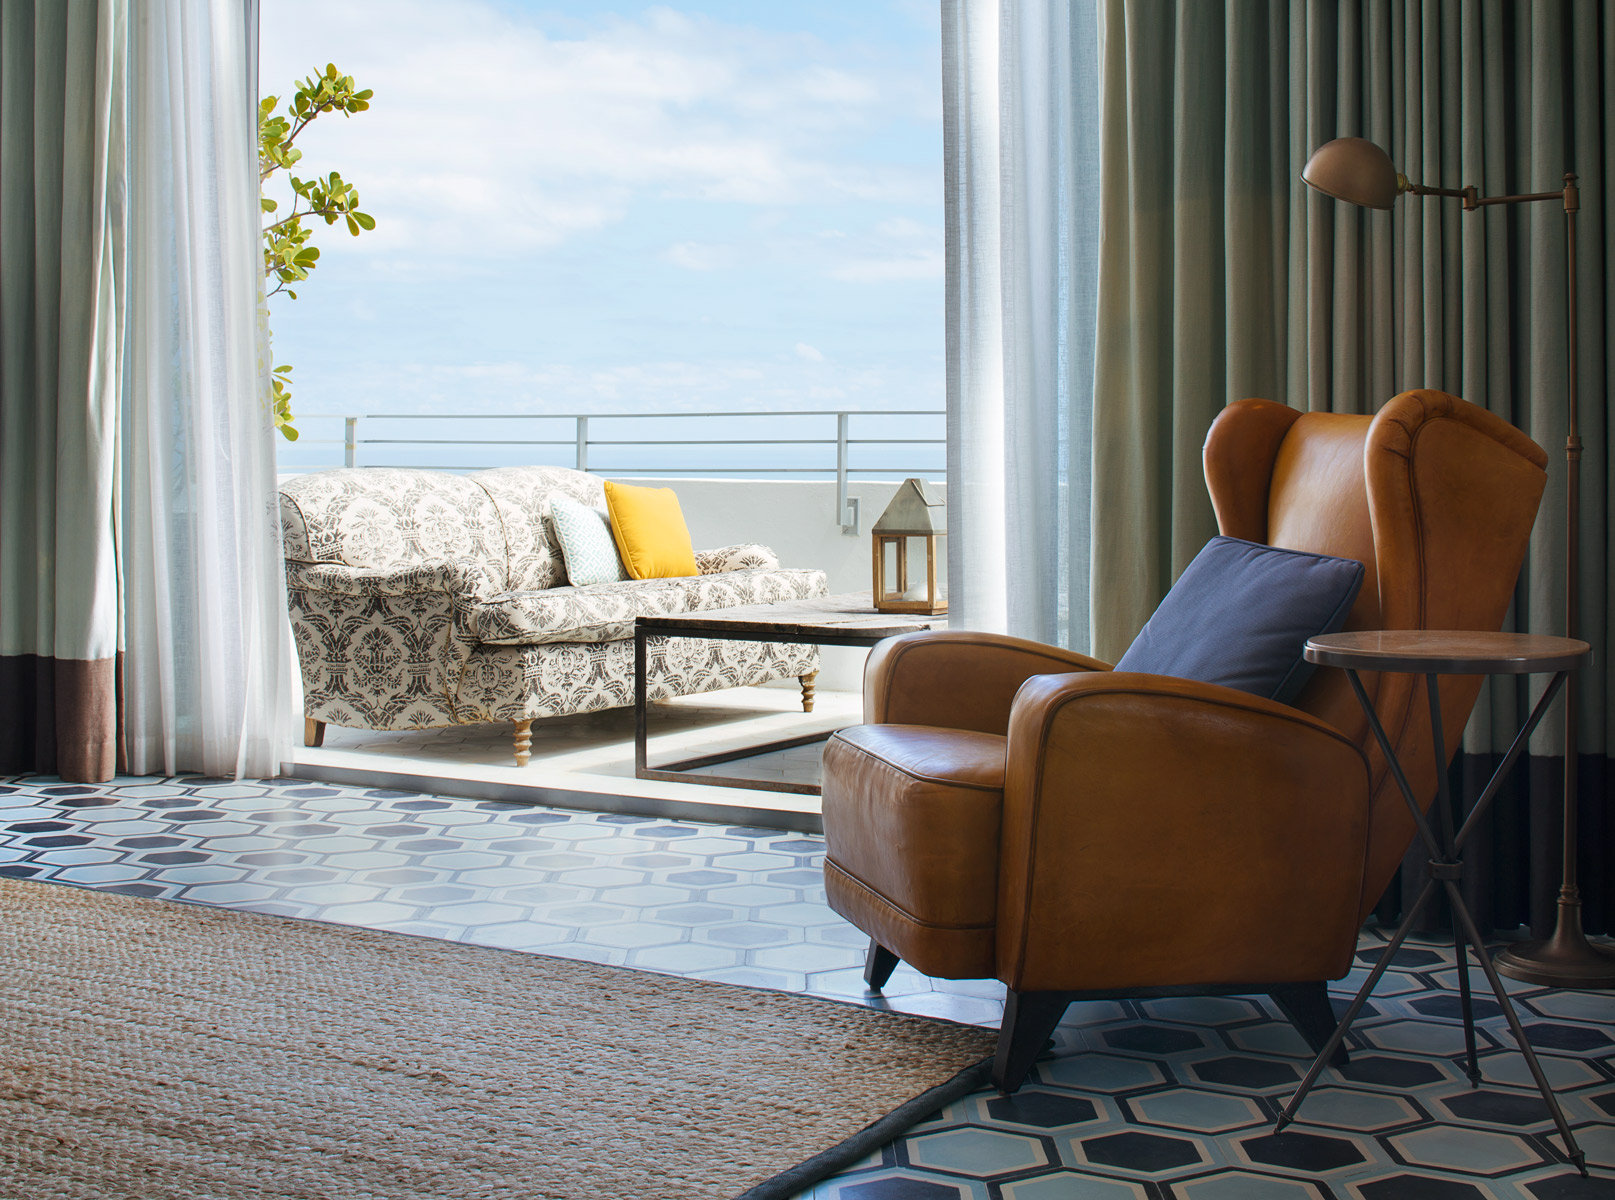 Soho_Beach_House_Miami_chair.JPG